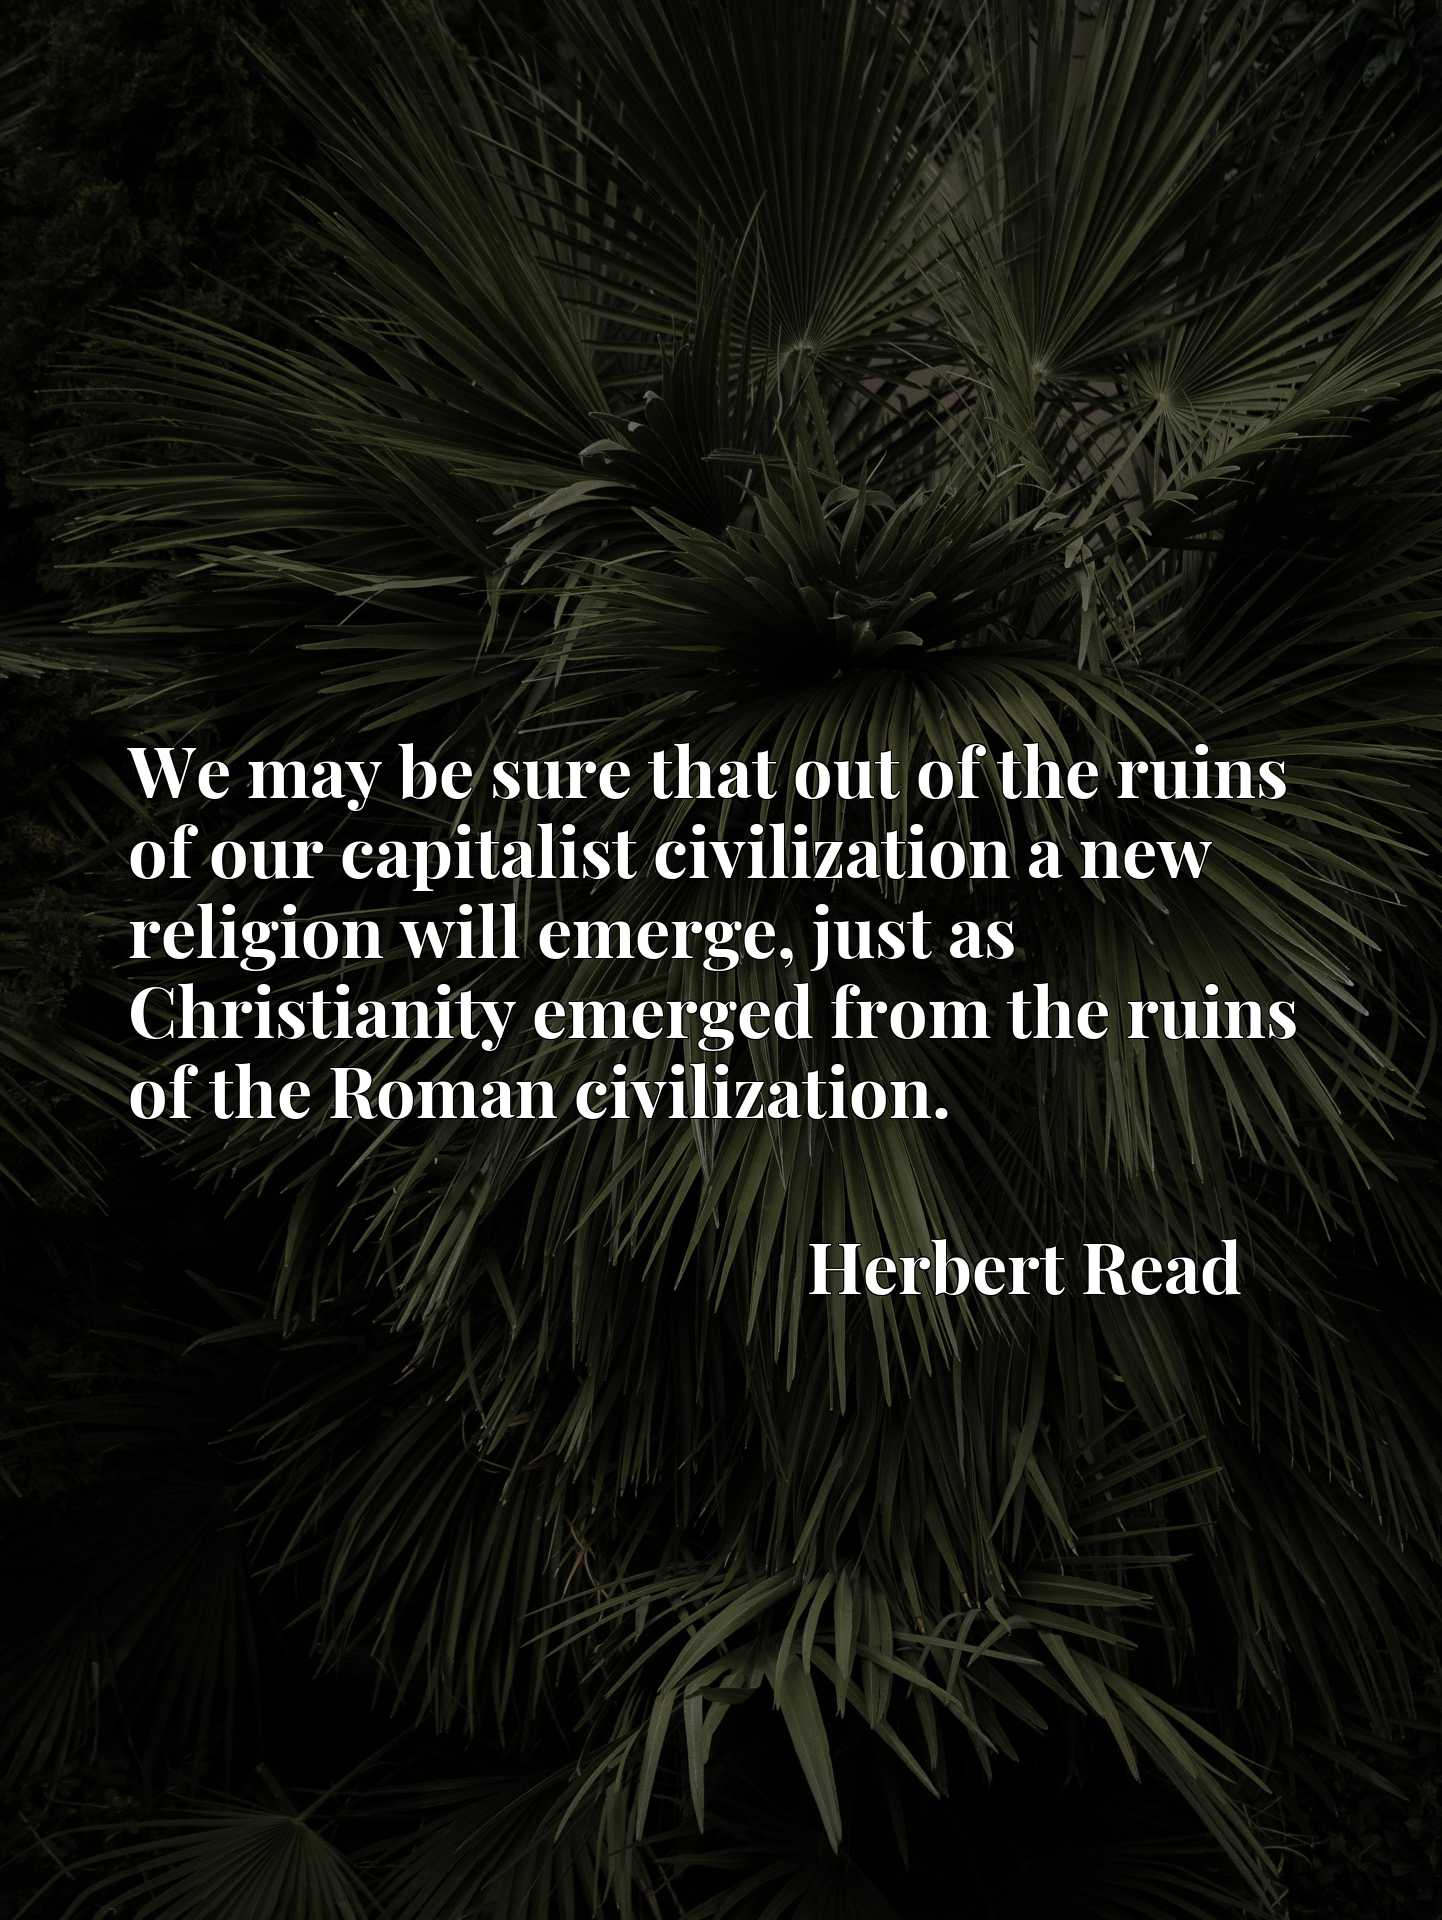 We may be sure that out of the ruins of our capitalist civilization a new religion will emerge, just as Christianity emerged from the ruins of the Roman civilization.